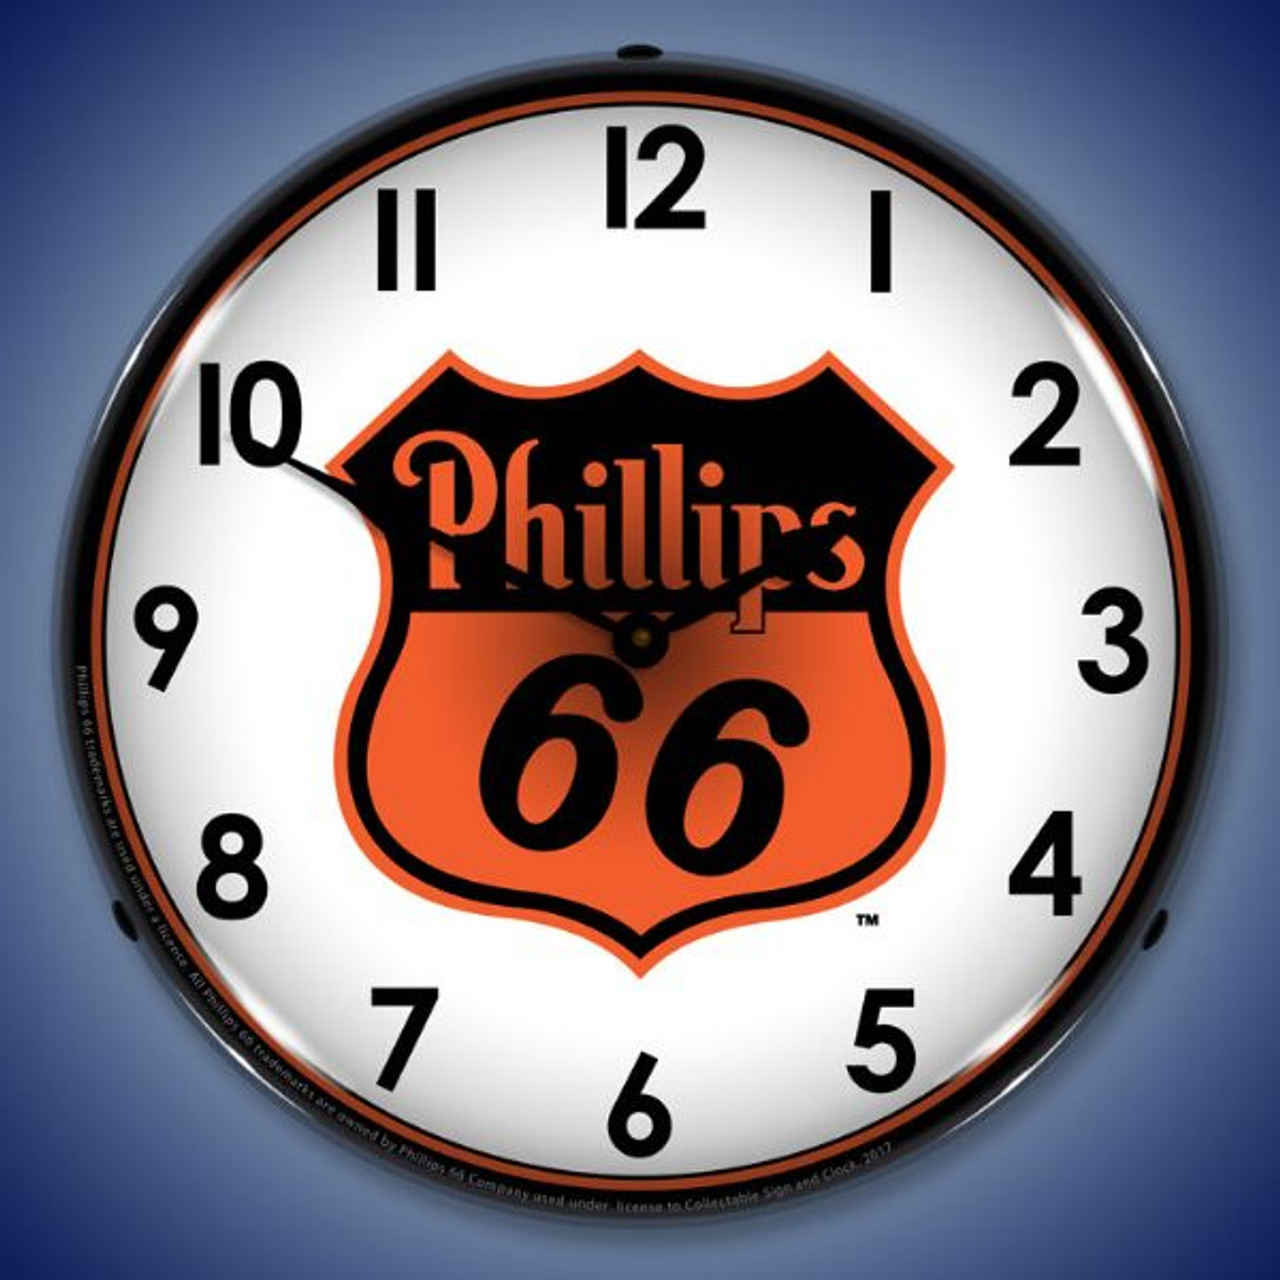 Phillips 66 Orange - LED Lighted Wall Clock 14 x 14 Inches